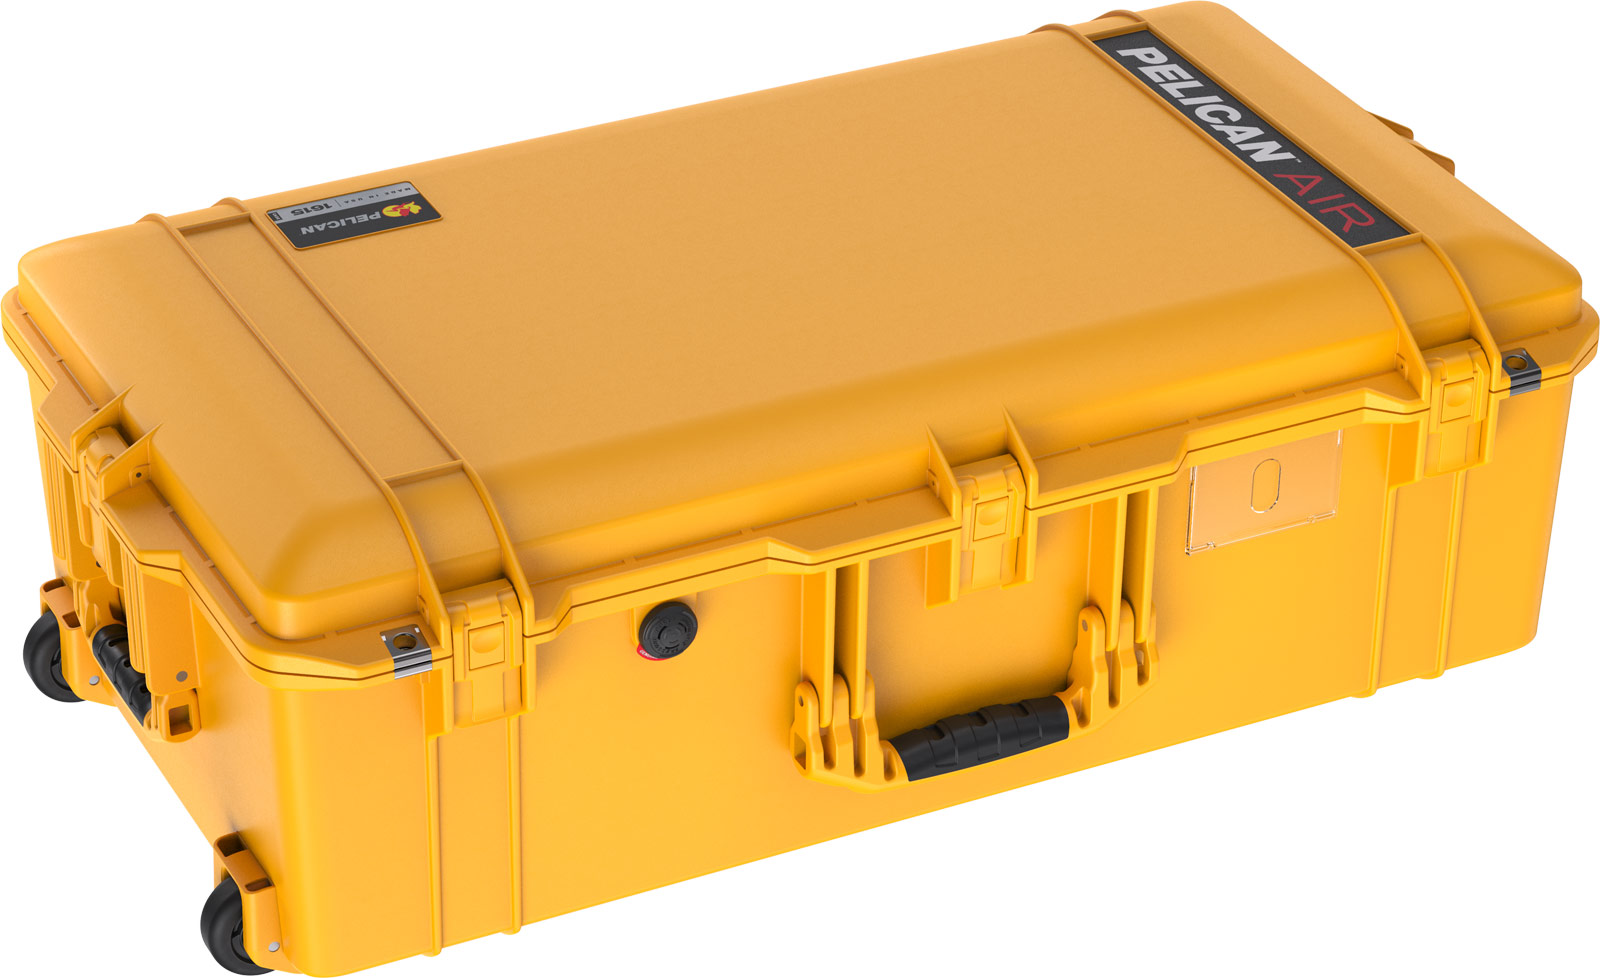 pelican yellow travel cases 1615 air case